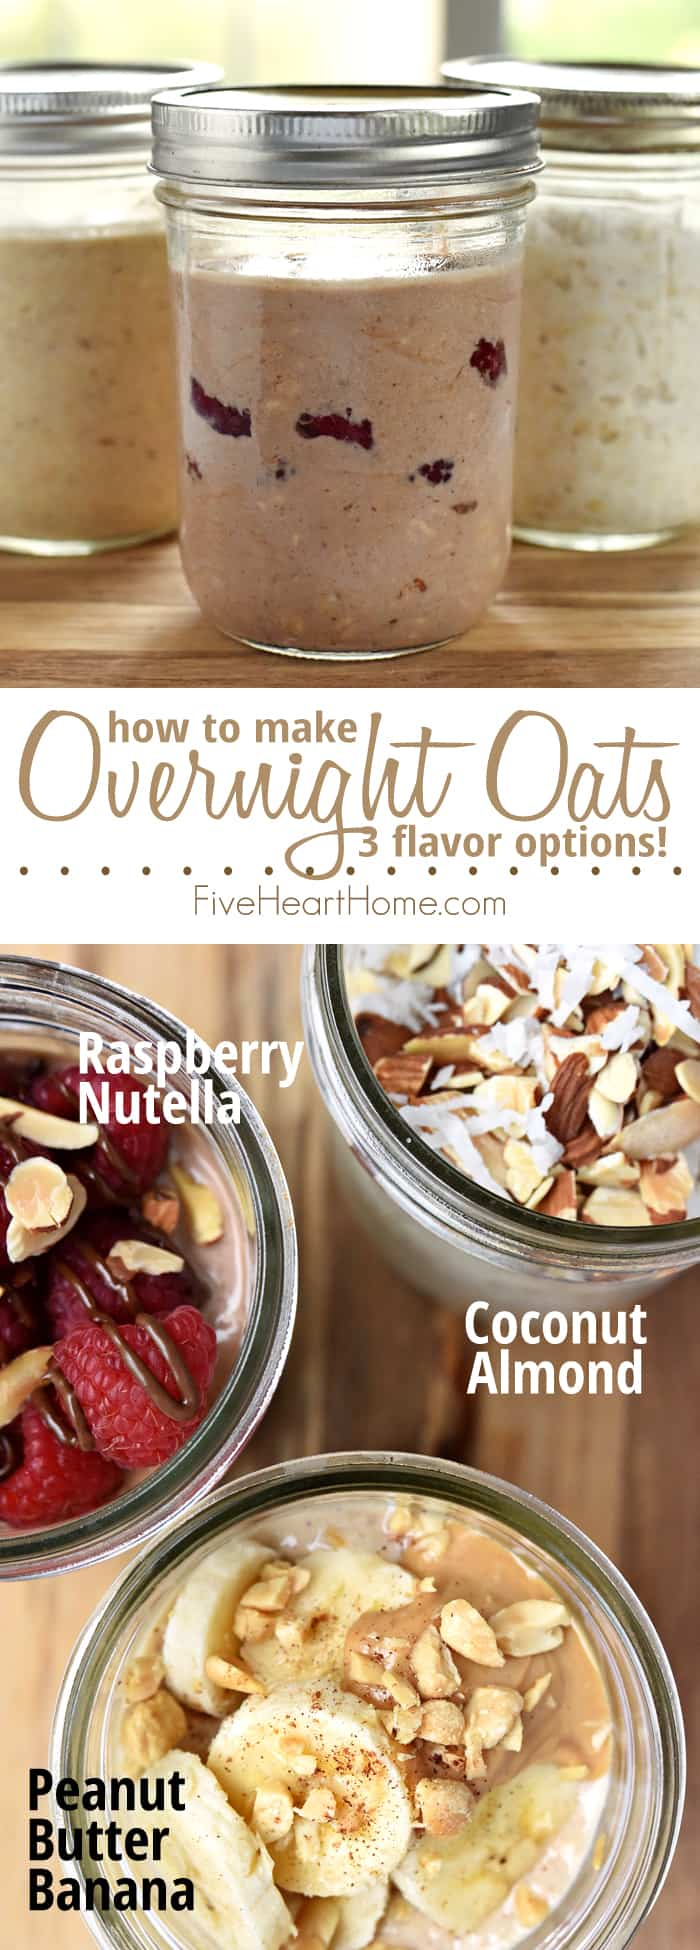 Overnight Oats, 3 Ways: Peanut Butter Banana, Raspberry Nutella, and Coconut Almond flavors ~ refrigerate a mixture of oats, milk, and yogurt overnight for a creamy, wholesome, instant, no-cook breakfast! | FiveHeartHome.com